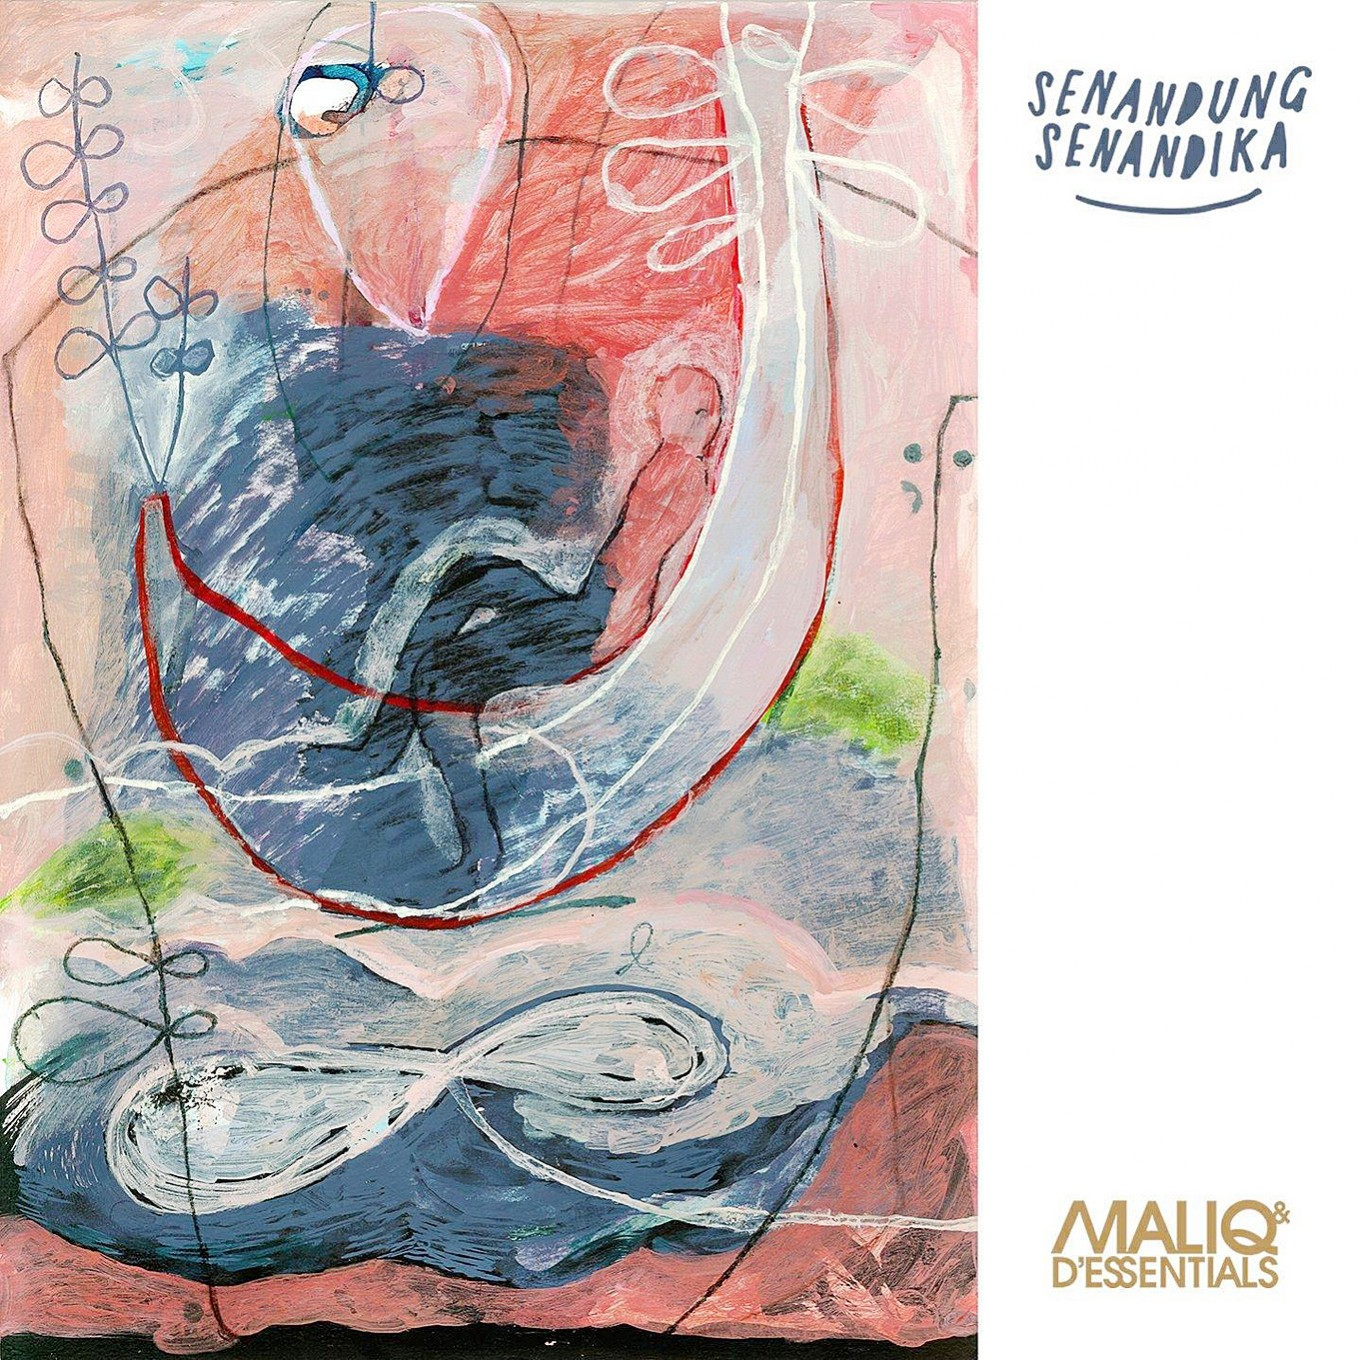 Album Review: 'Senandung Senandika' by Maliq & D'Essentials